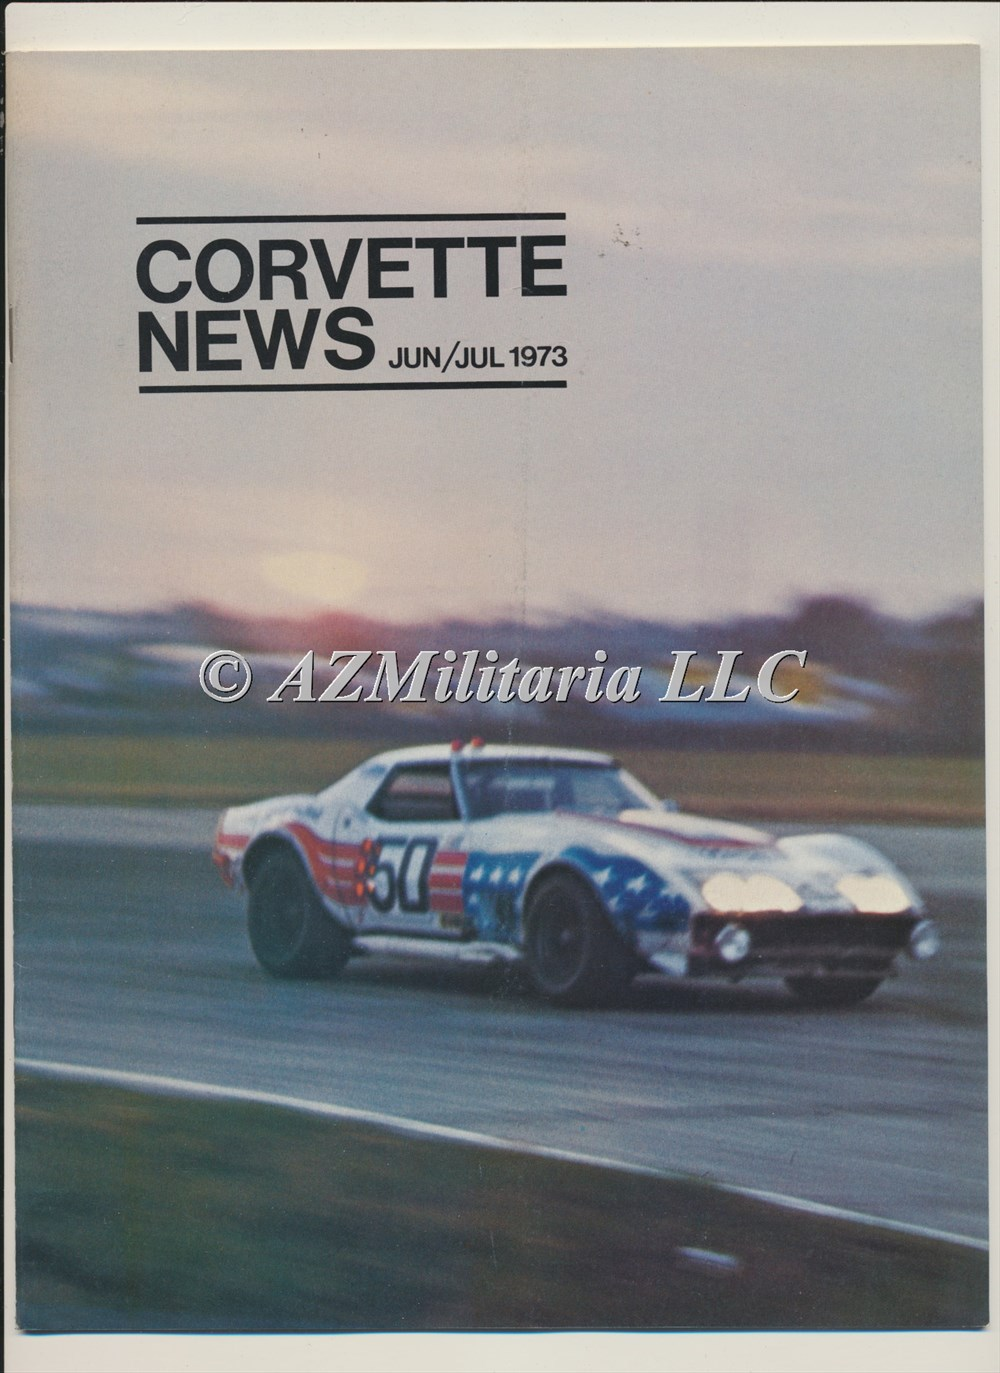 Primary image for Corvette News Jun/Jul 1973